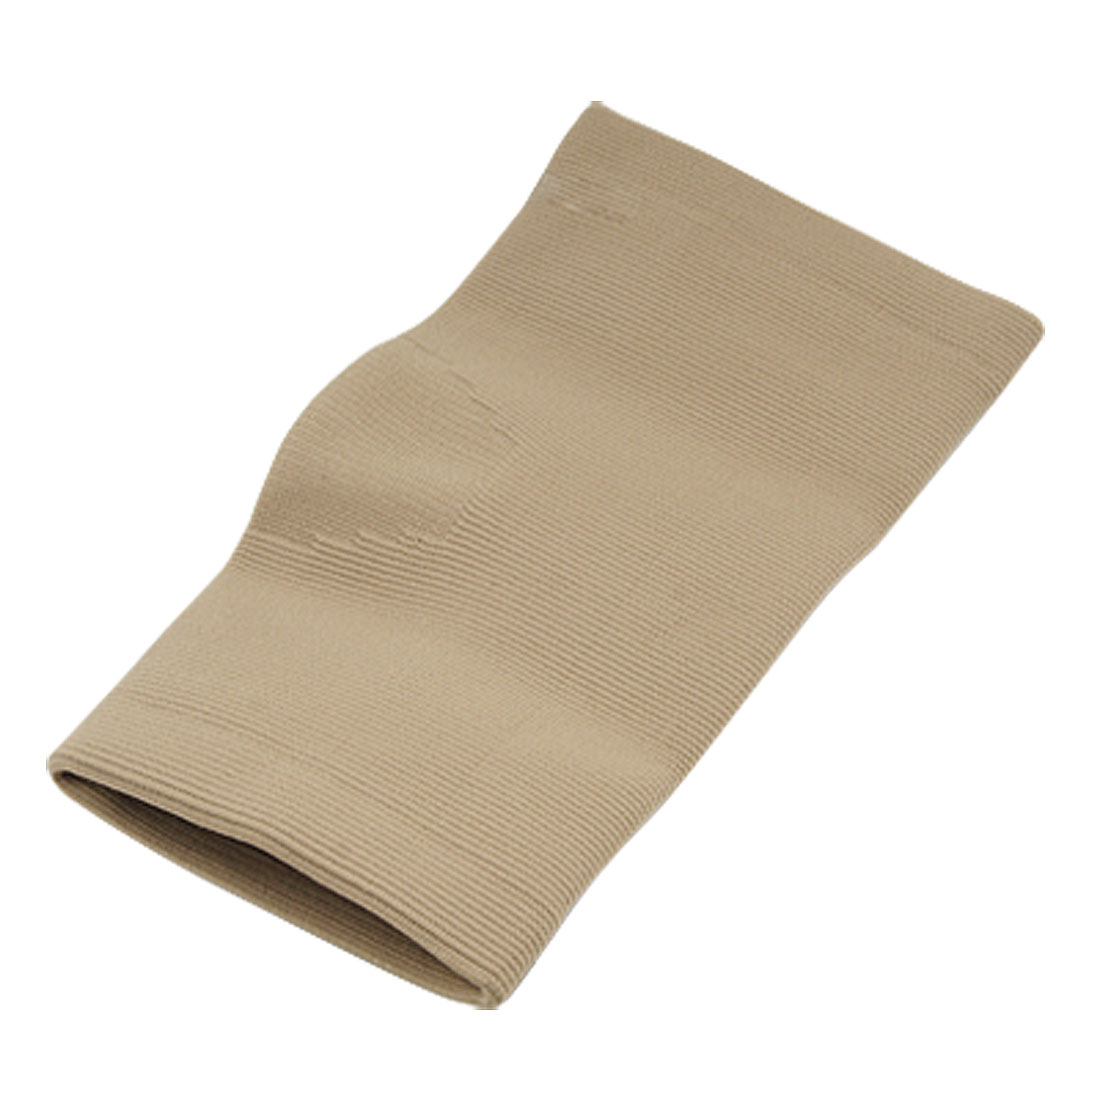 Beige Elastic 22cm Length Sports Protective Elbow Support Wrap